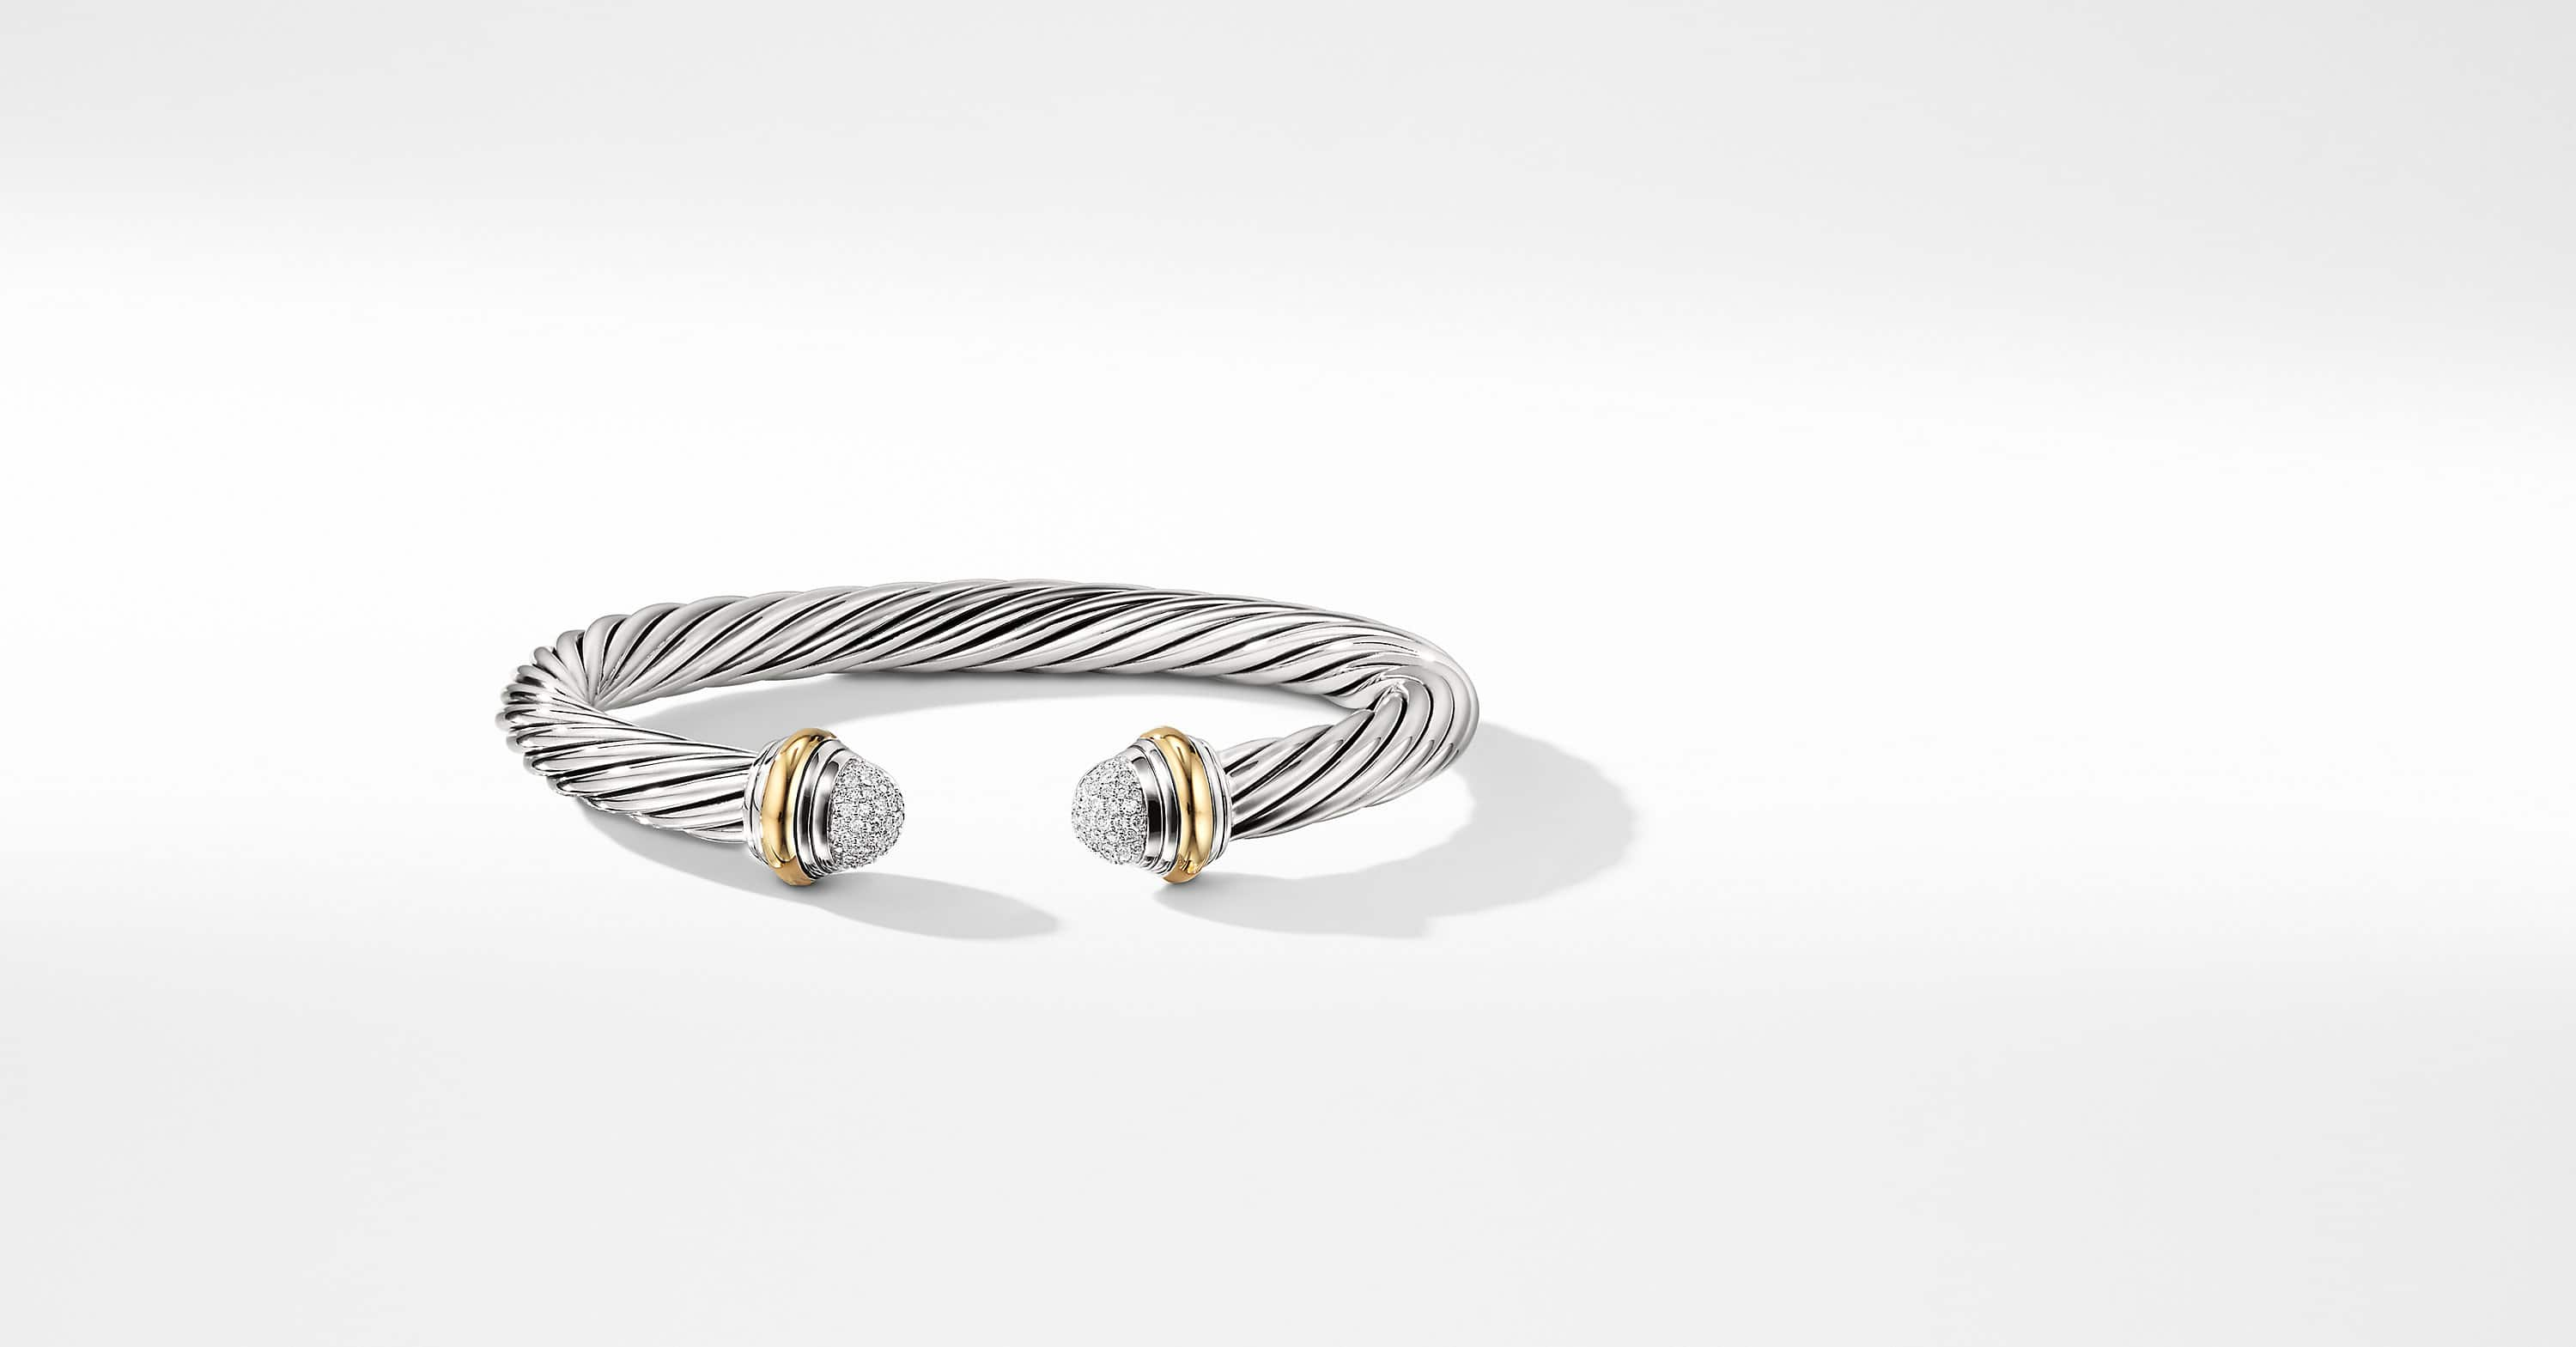 Bracelet Cable Classics en or 18K avec diamants, 7 mm